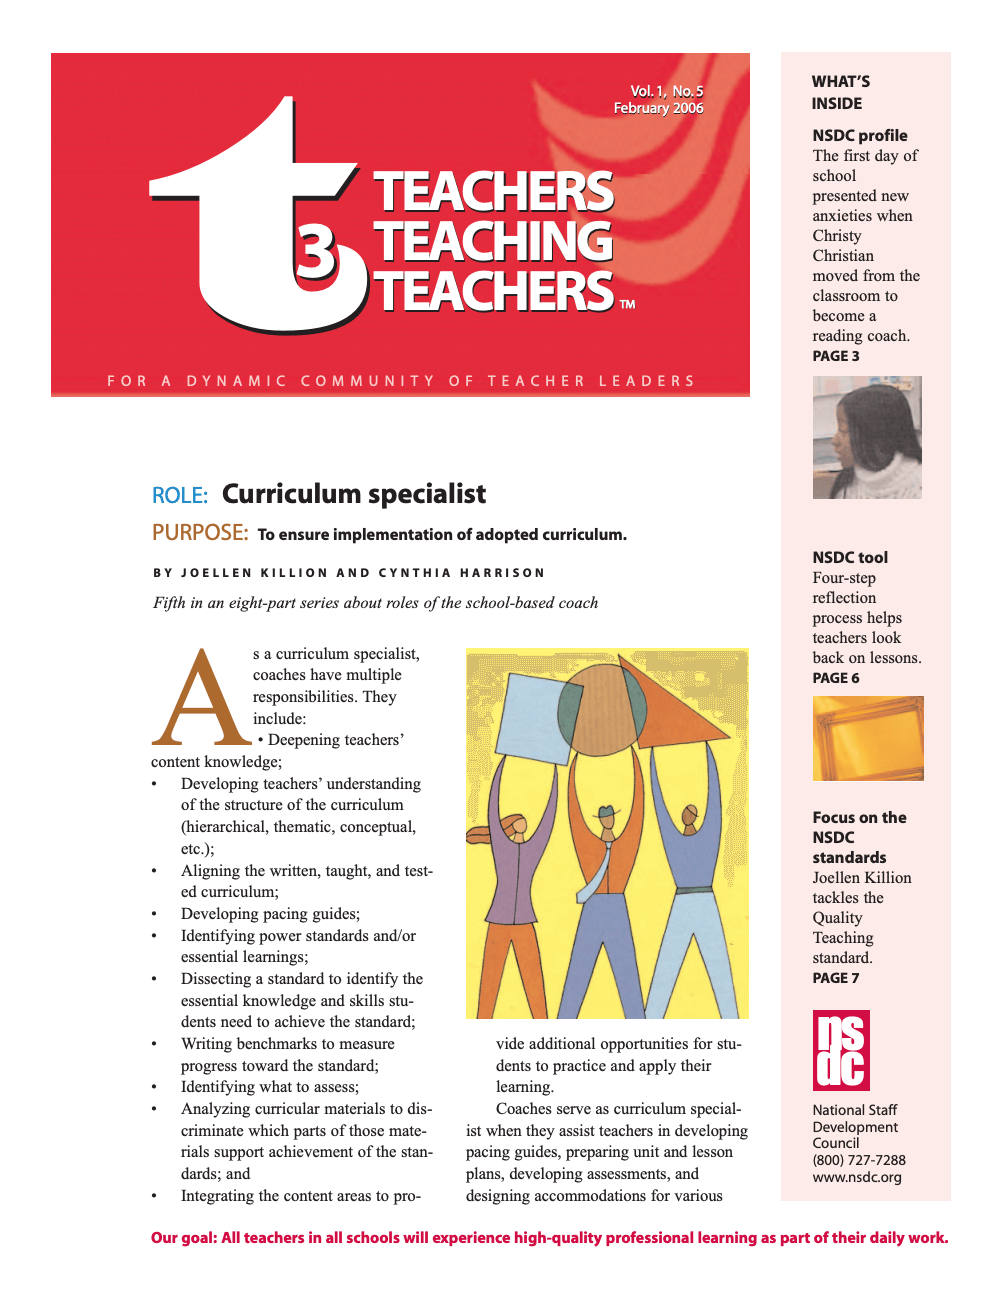 teachers-teaching-teachers-february-2006-vol-1-no-5